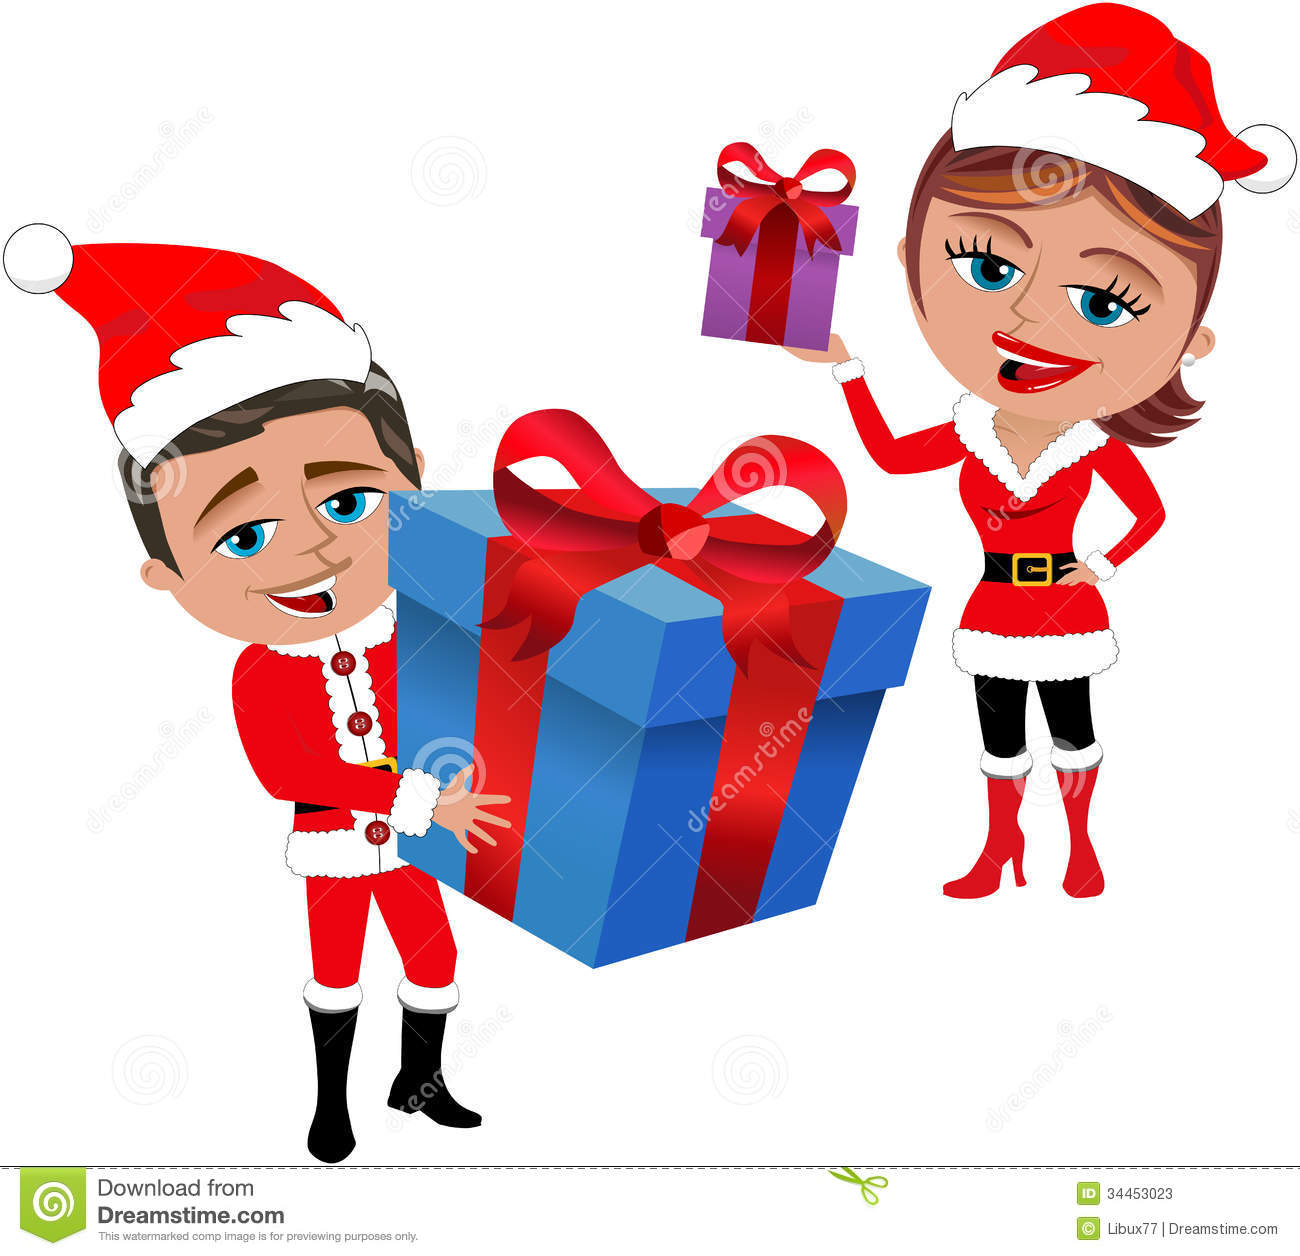 Santa Claus Couple Holding Gifts Stock Vector - Illustration of gift ...